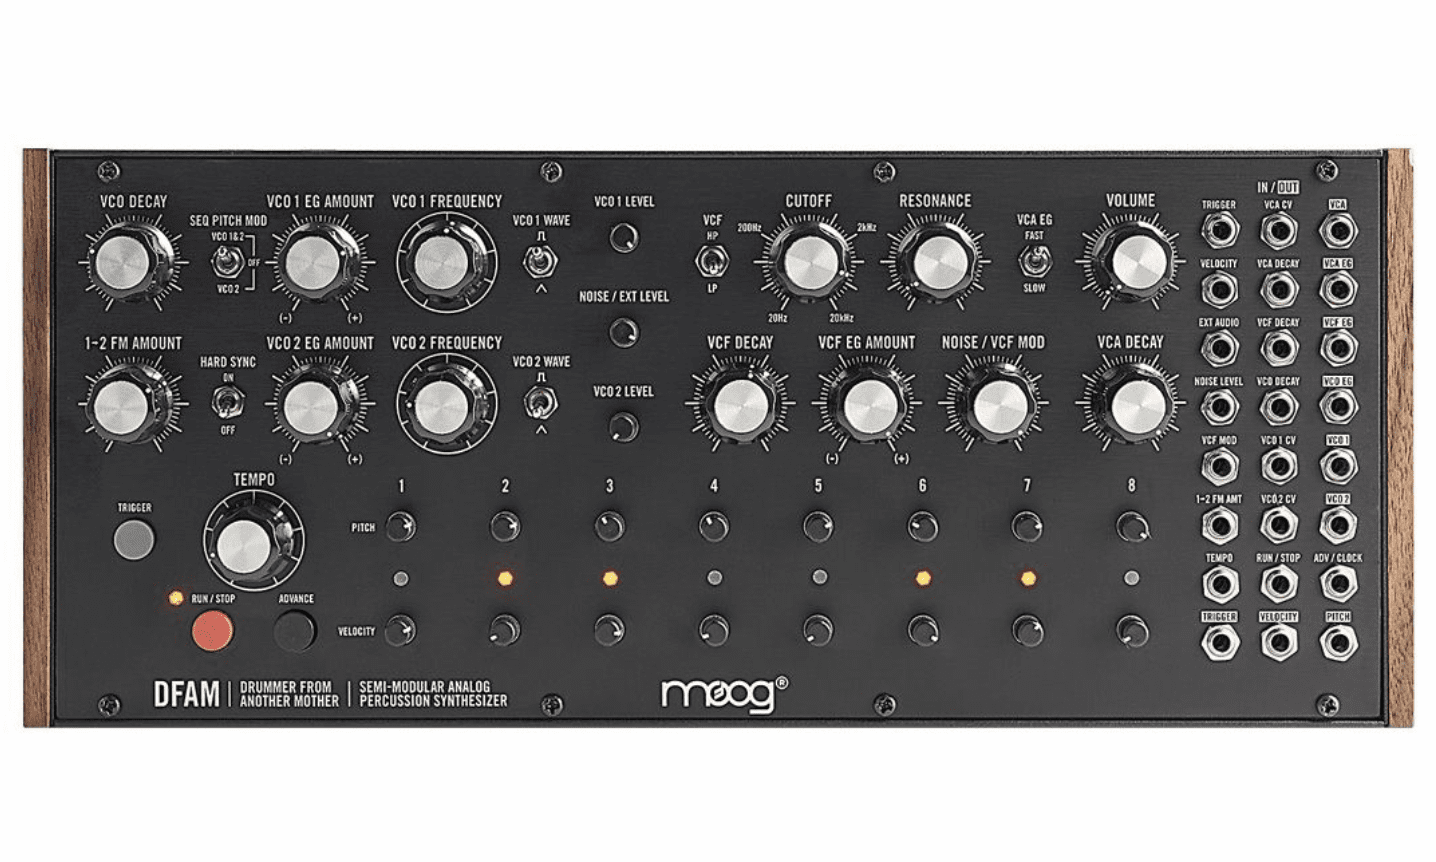 Moog Drummer From Another Mother (DFAM)